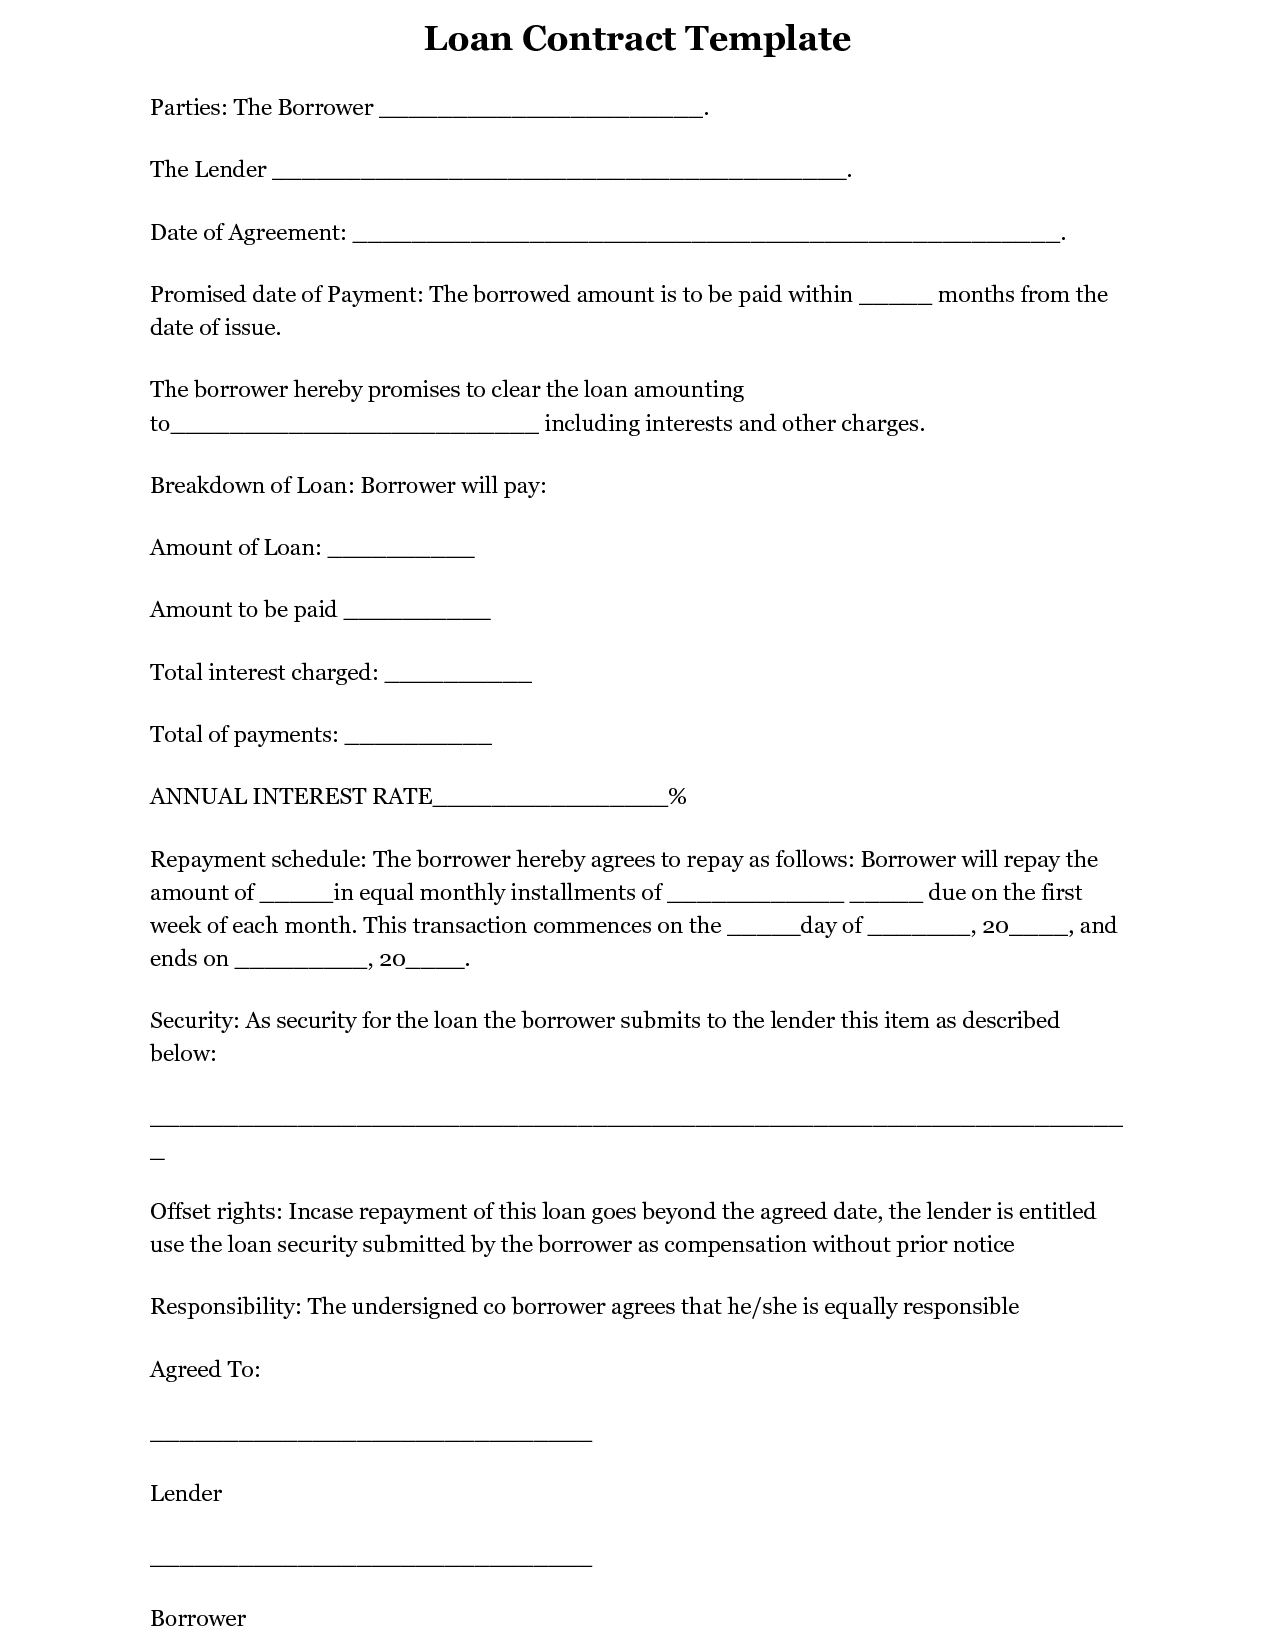 simple interest loan agreement template – Template for a Loan Agreement